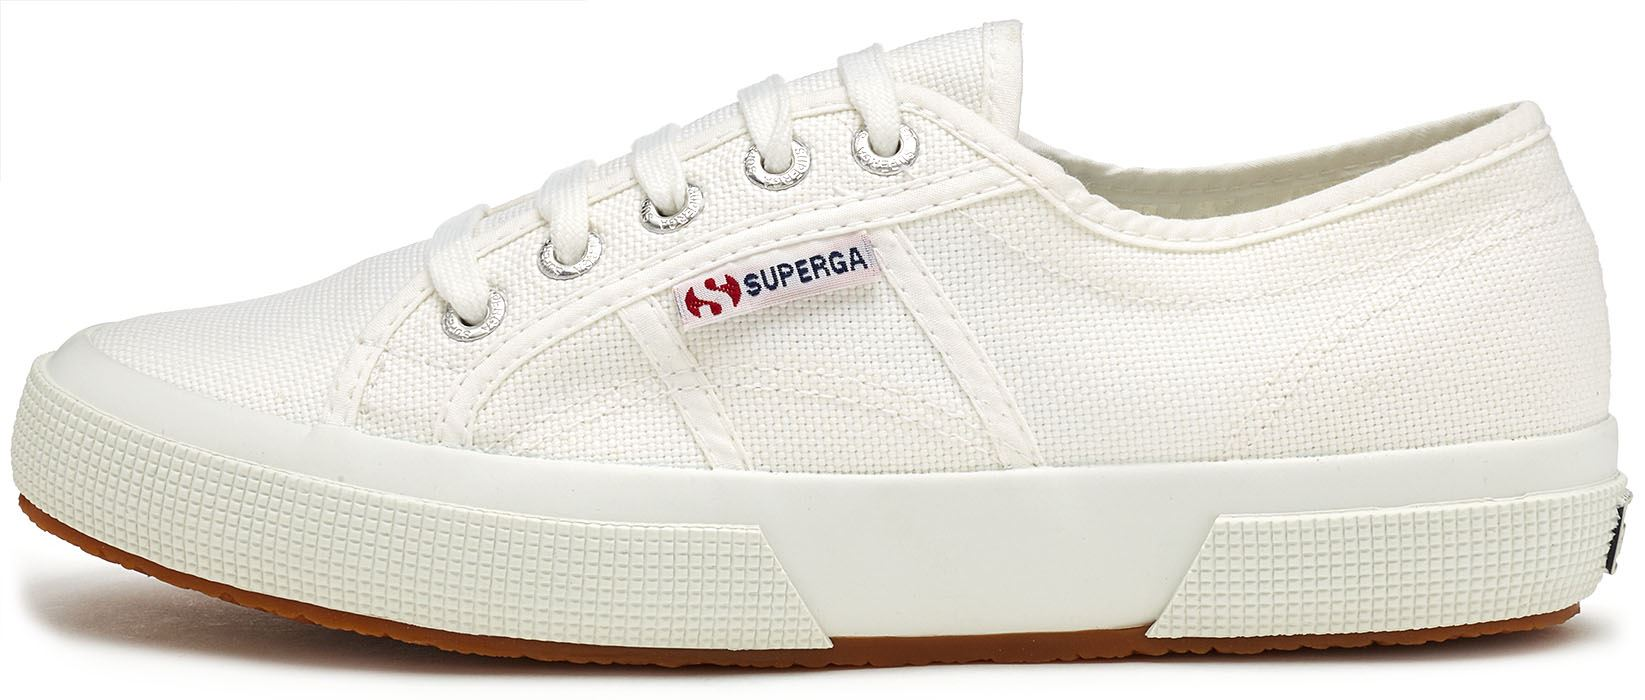 Chaussures Superga 2750 rouges Fashion unisexe IFqtf5Gn4j